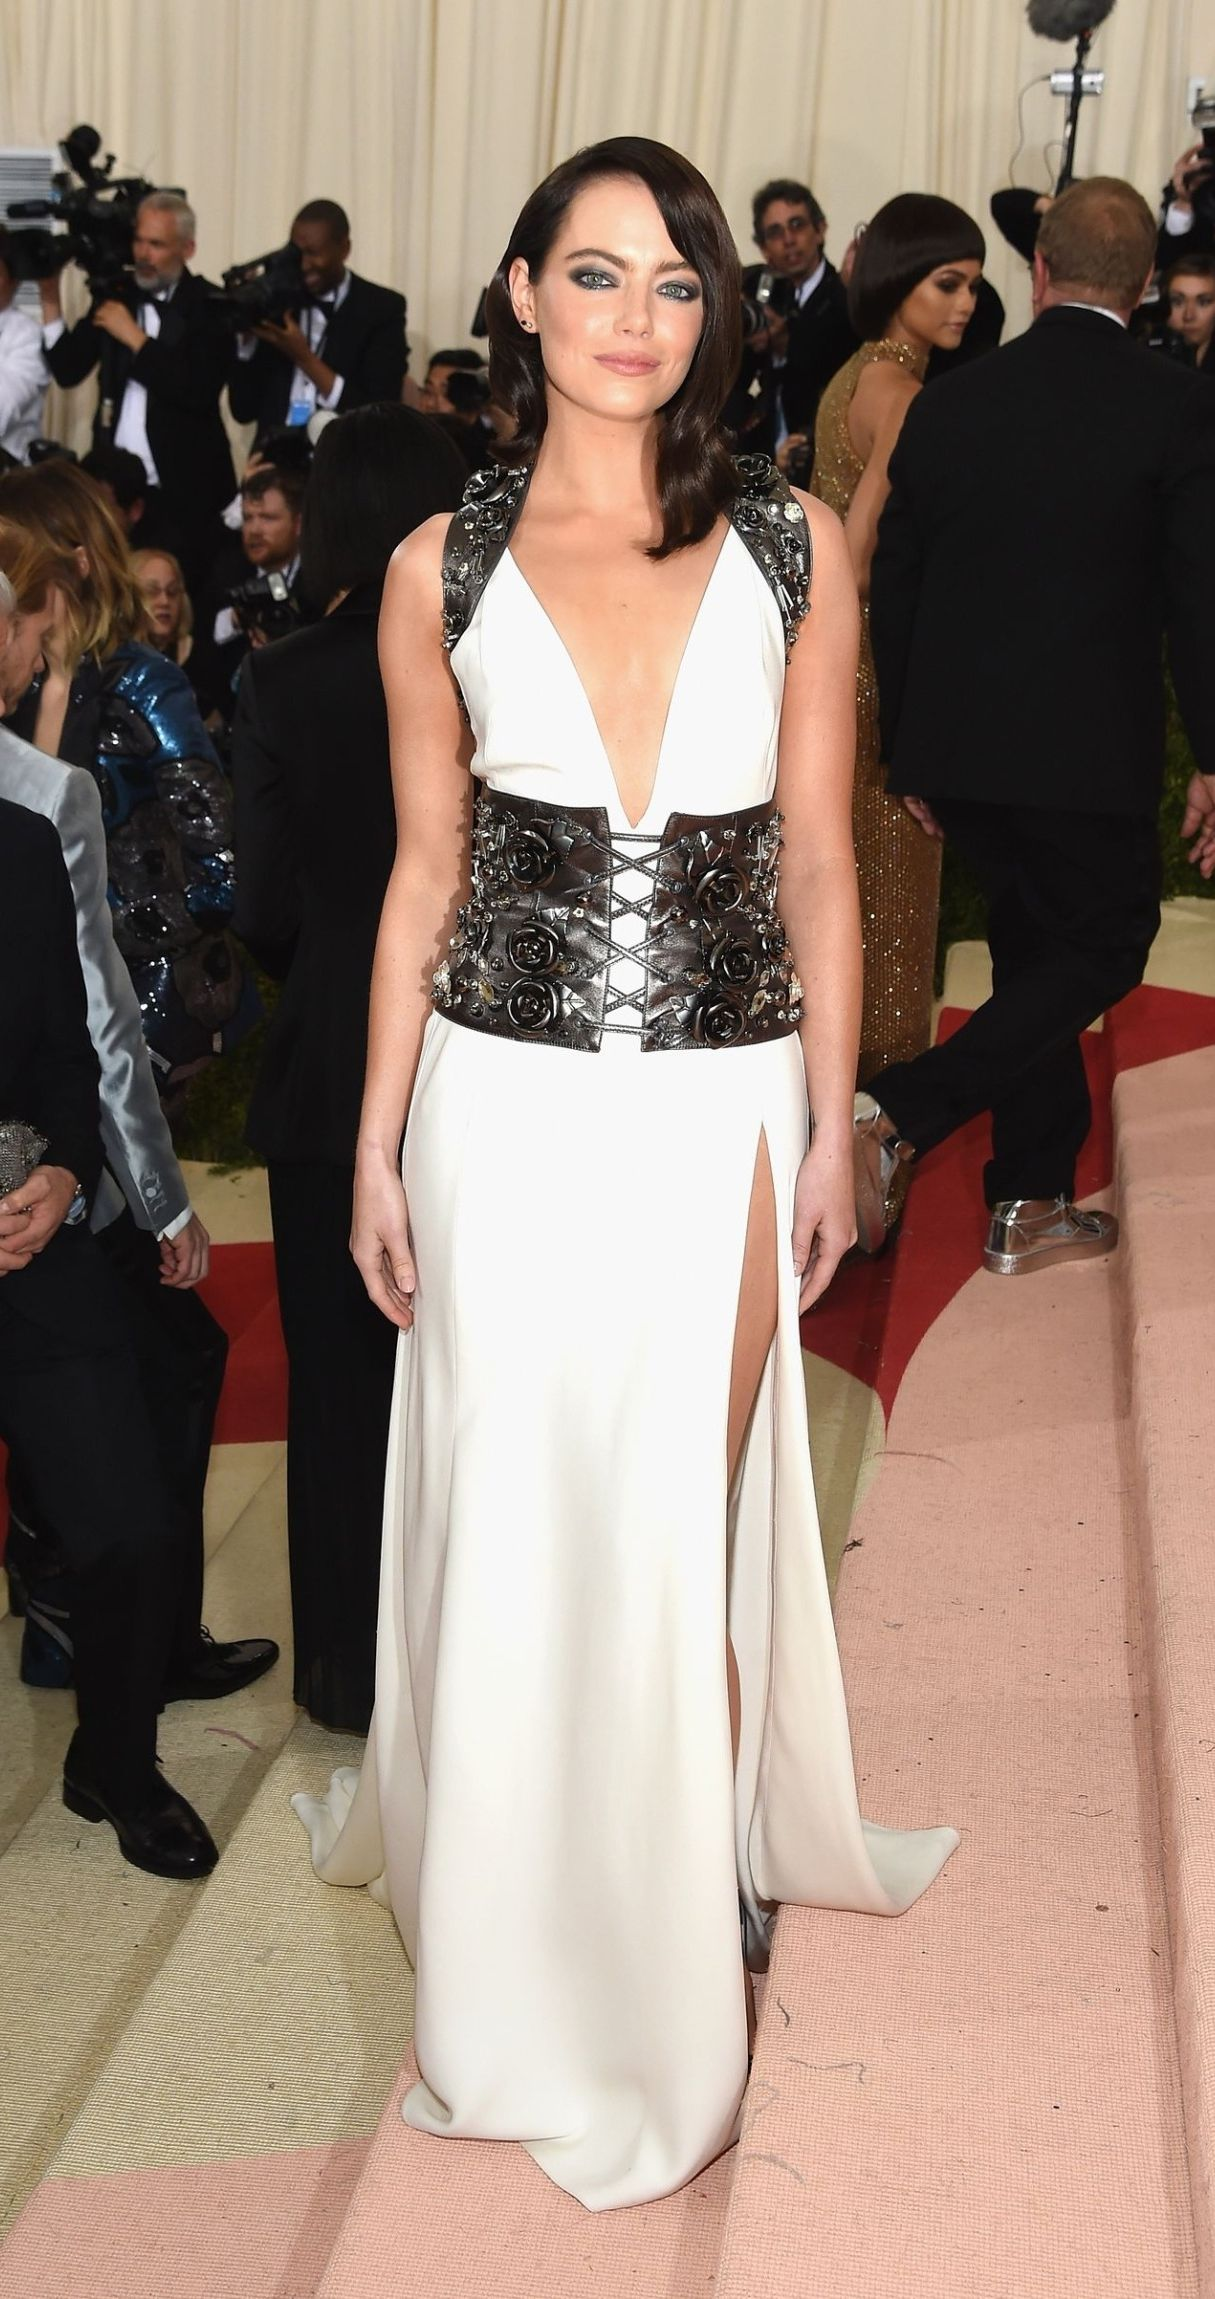 Every Single Look from the Met Gala Red Carpet | Red Carpet Celeb ...